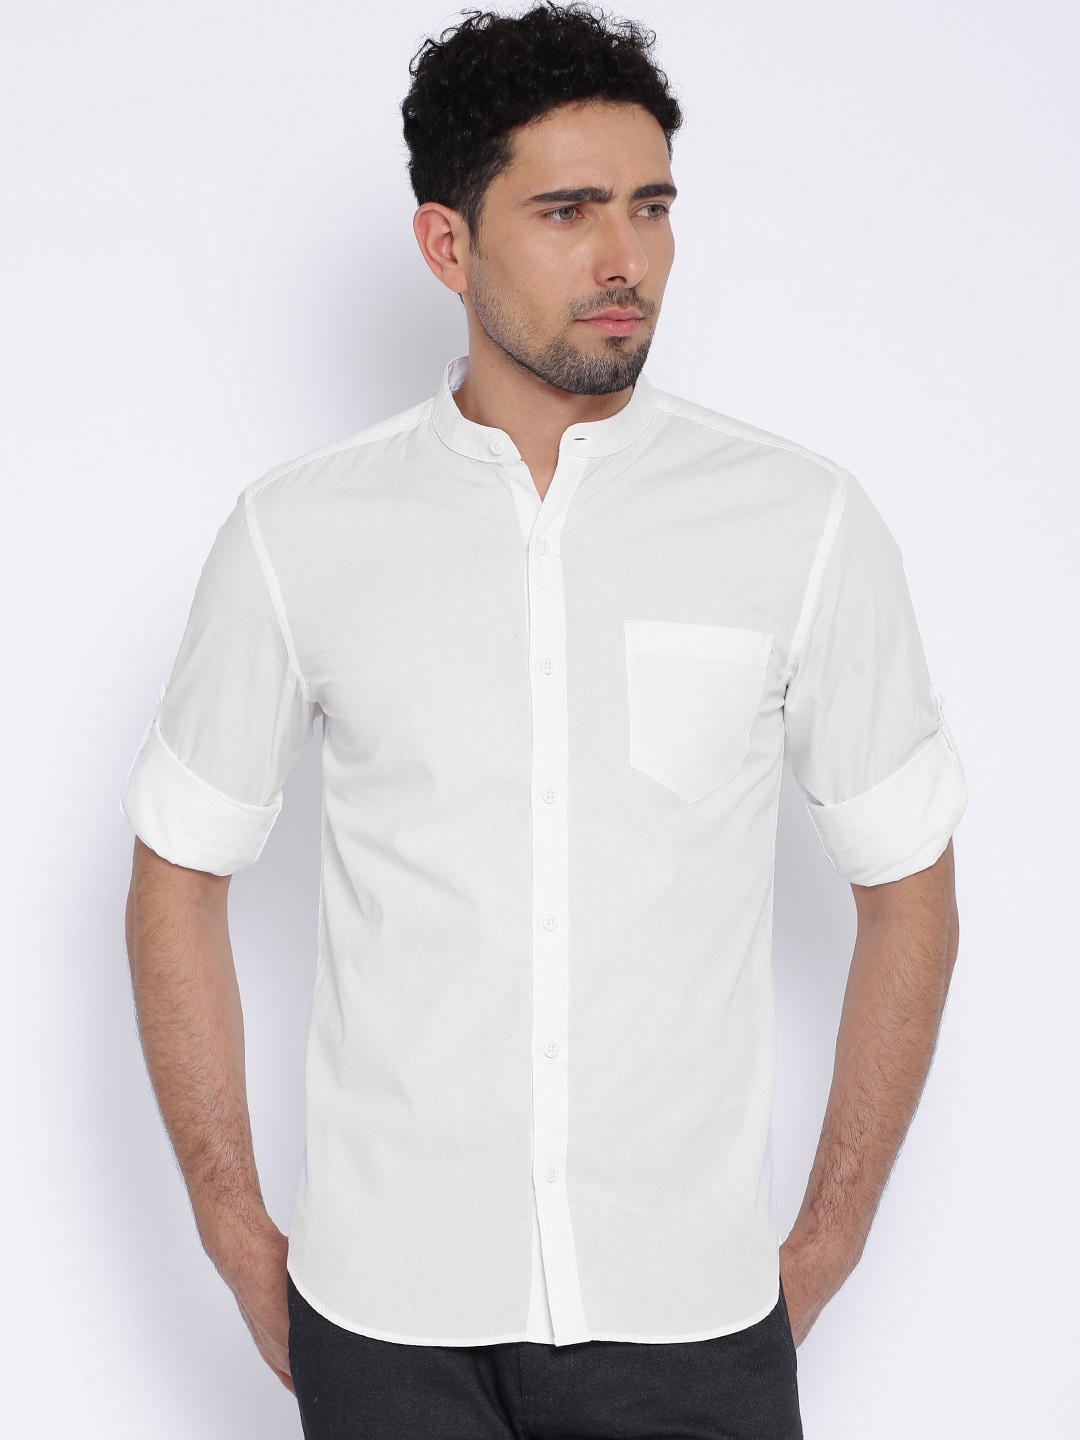 Men White Shirts | Buy Men White Shirts Online in India at Best Price